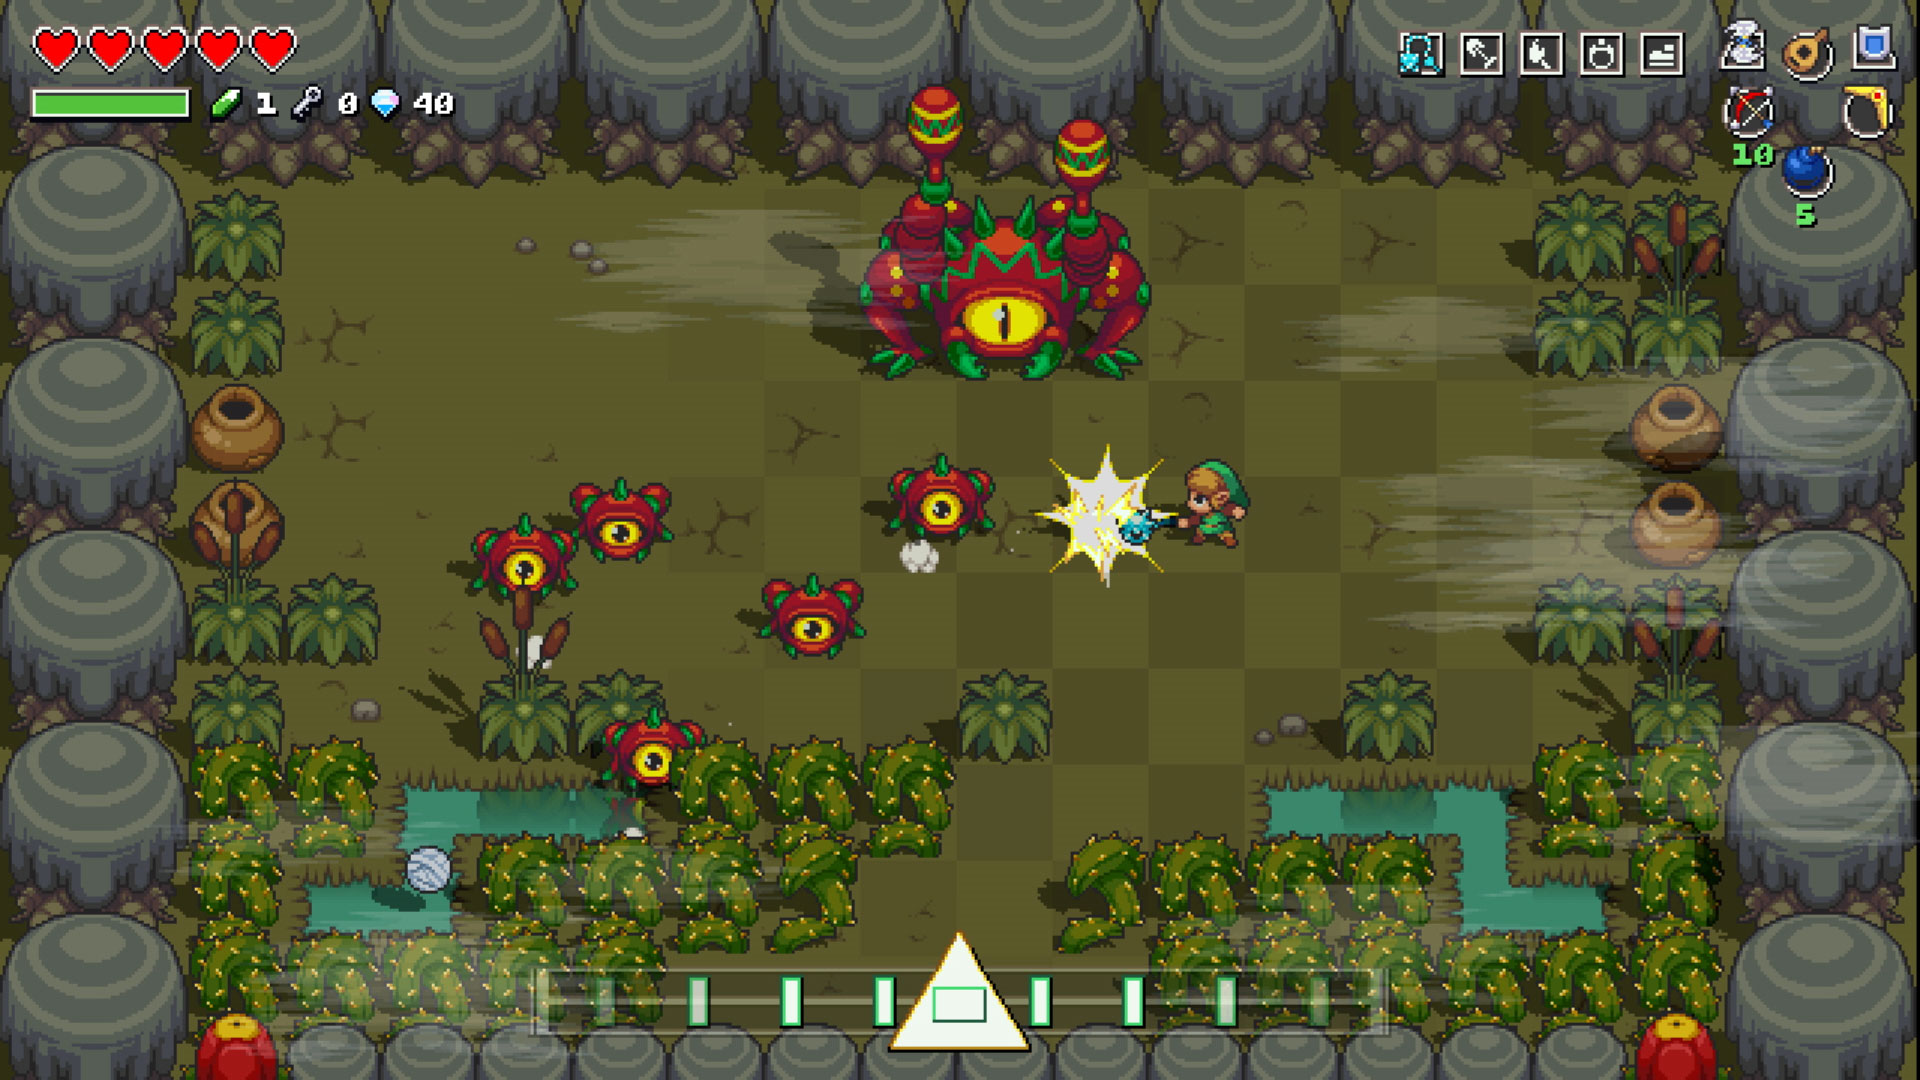 Cadence of Hyrule is a Zelda rhythm game that demands you move to